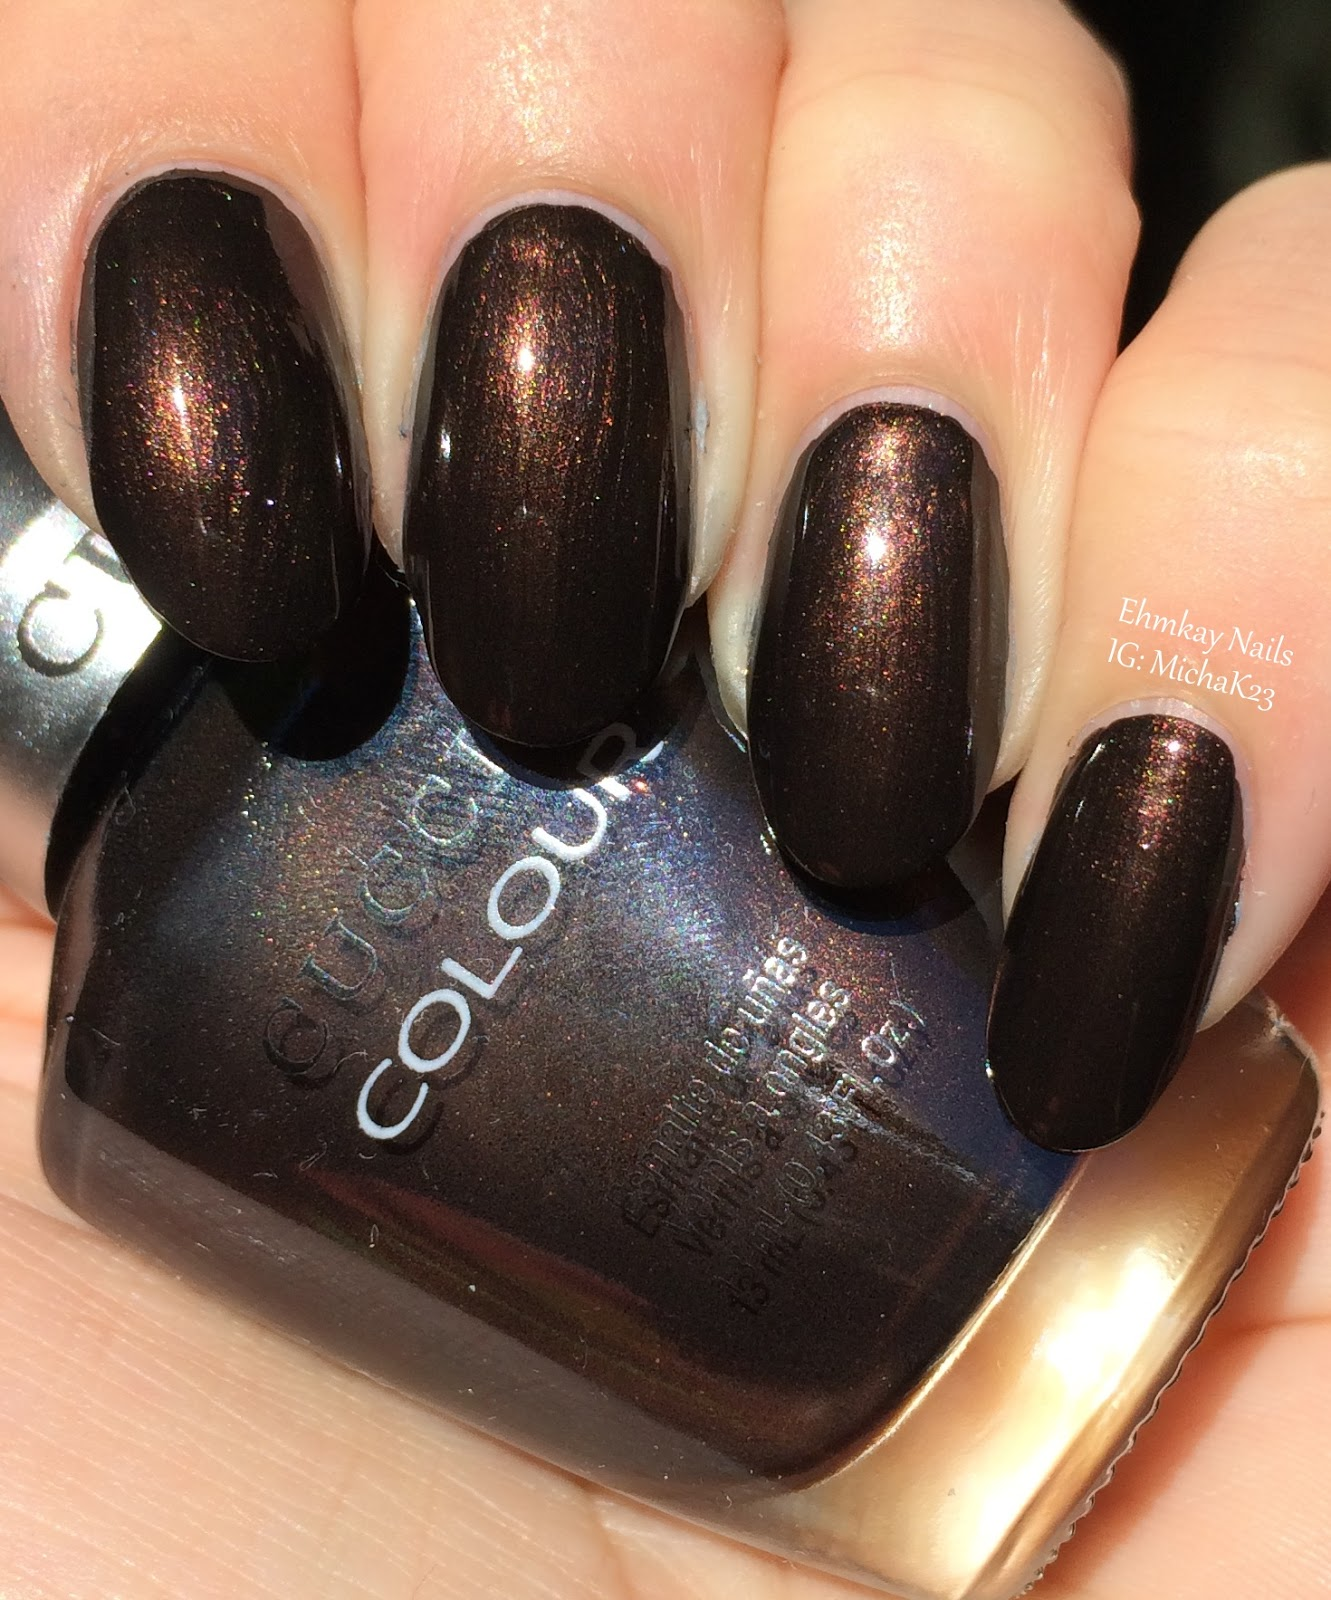 ehmkay nails: Cuccio Colours Royale Collection for Fall 2015 ...